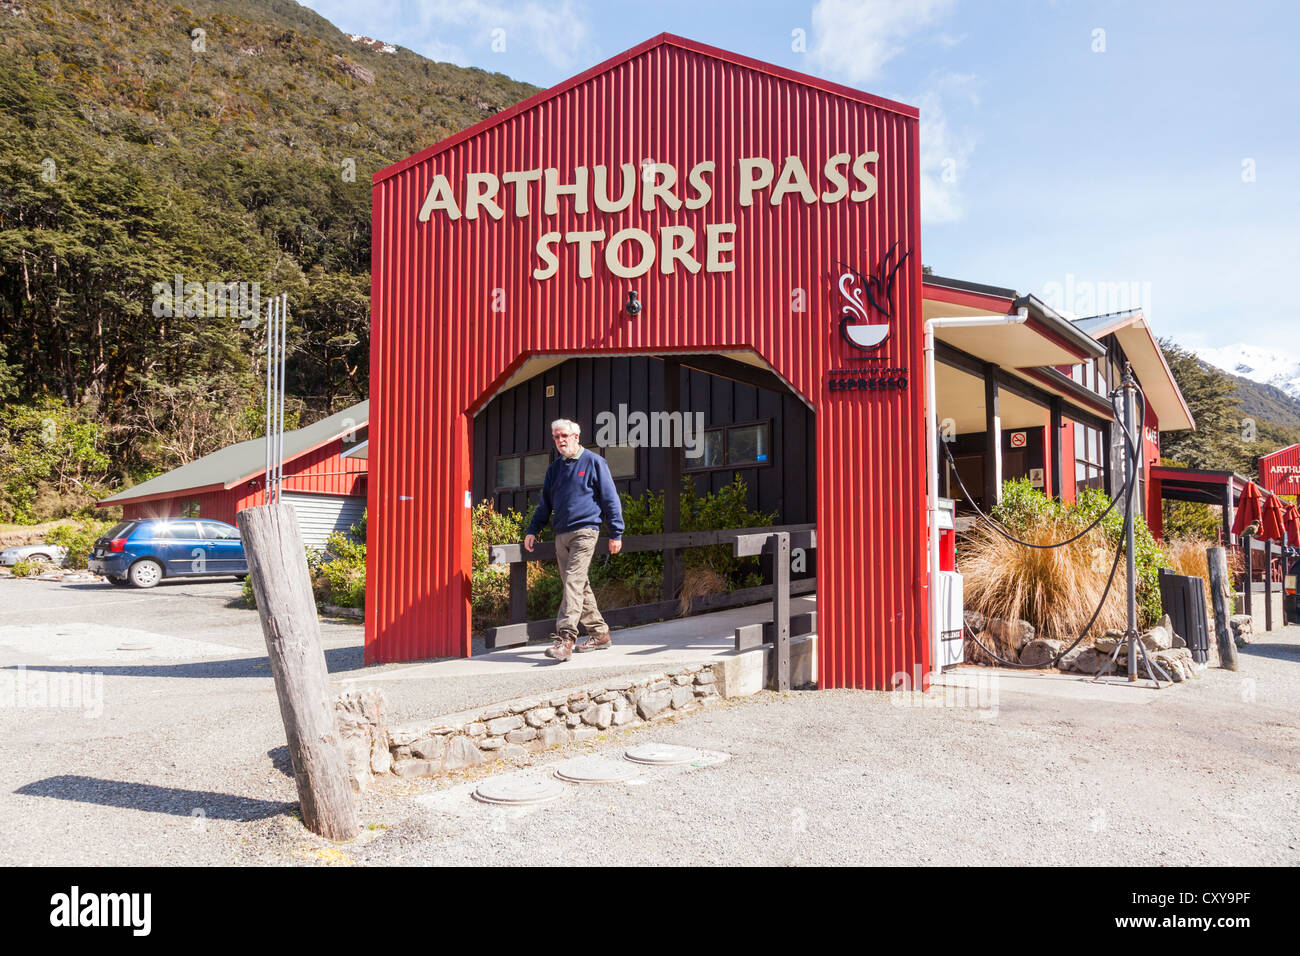 Arthurs Pass Store, Arthurs Pass, Canterbury, New Zealand, a man just walking out, on a bright sunny spring day. - Stock Image